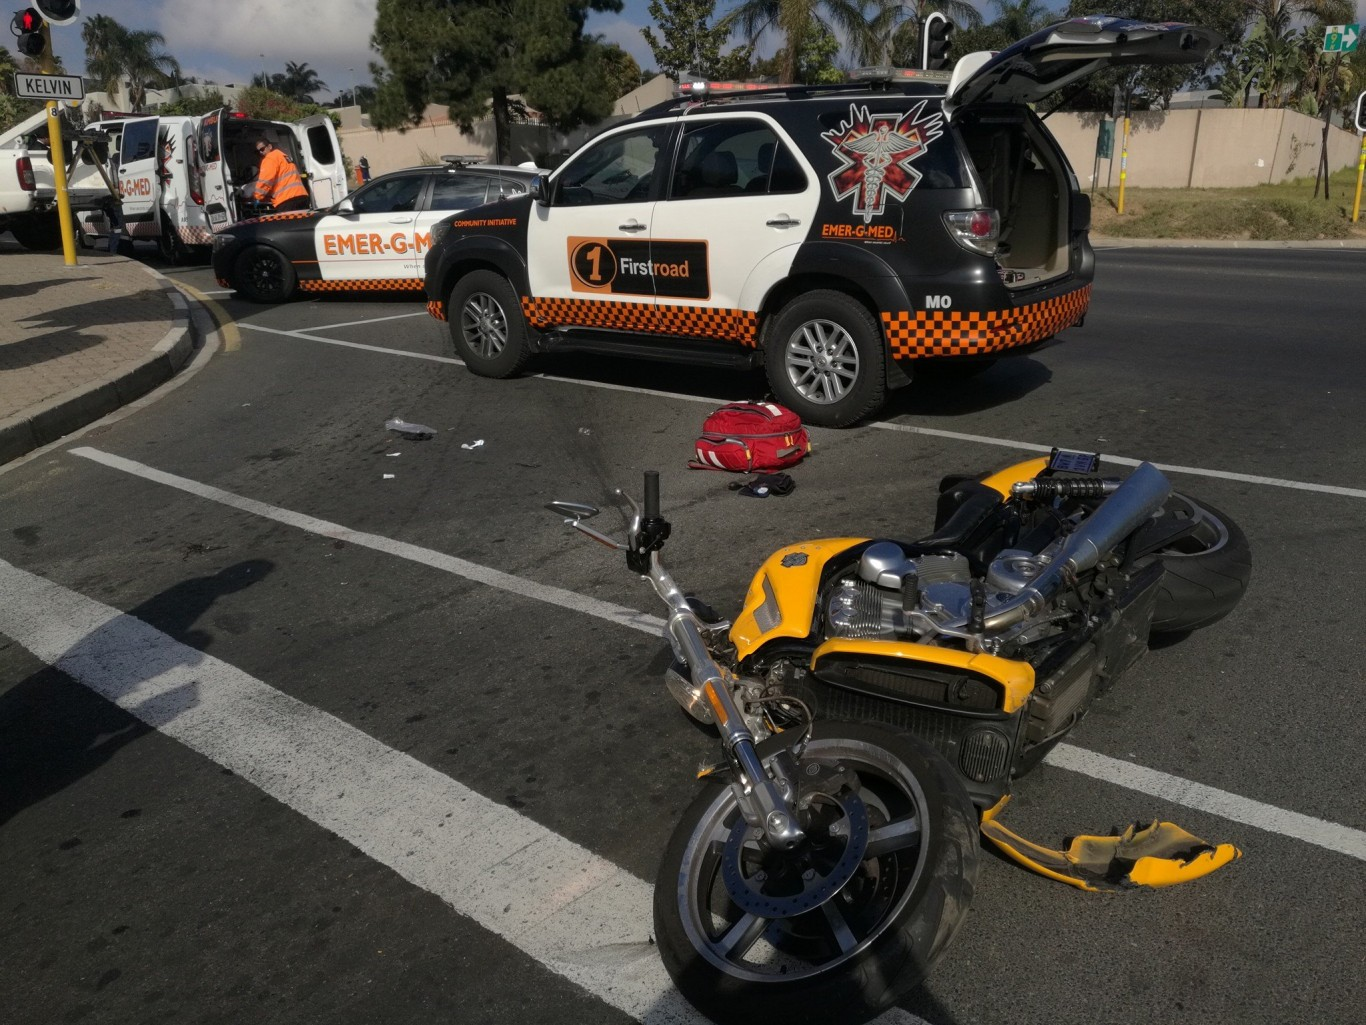 Biker injured in collision in Morningside